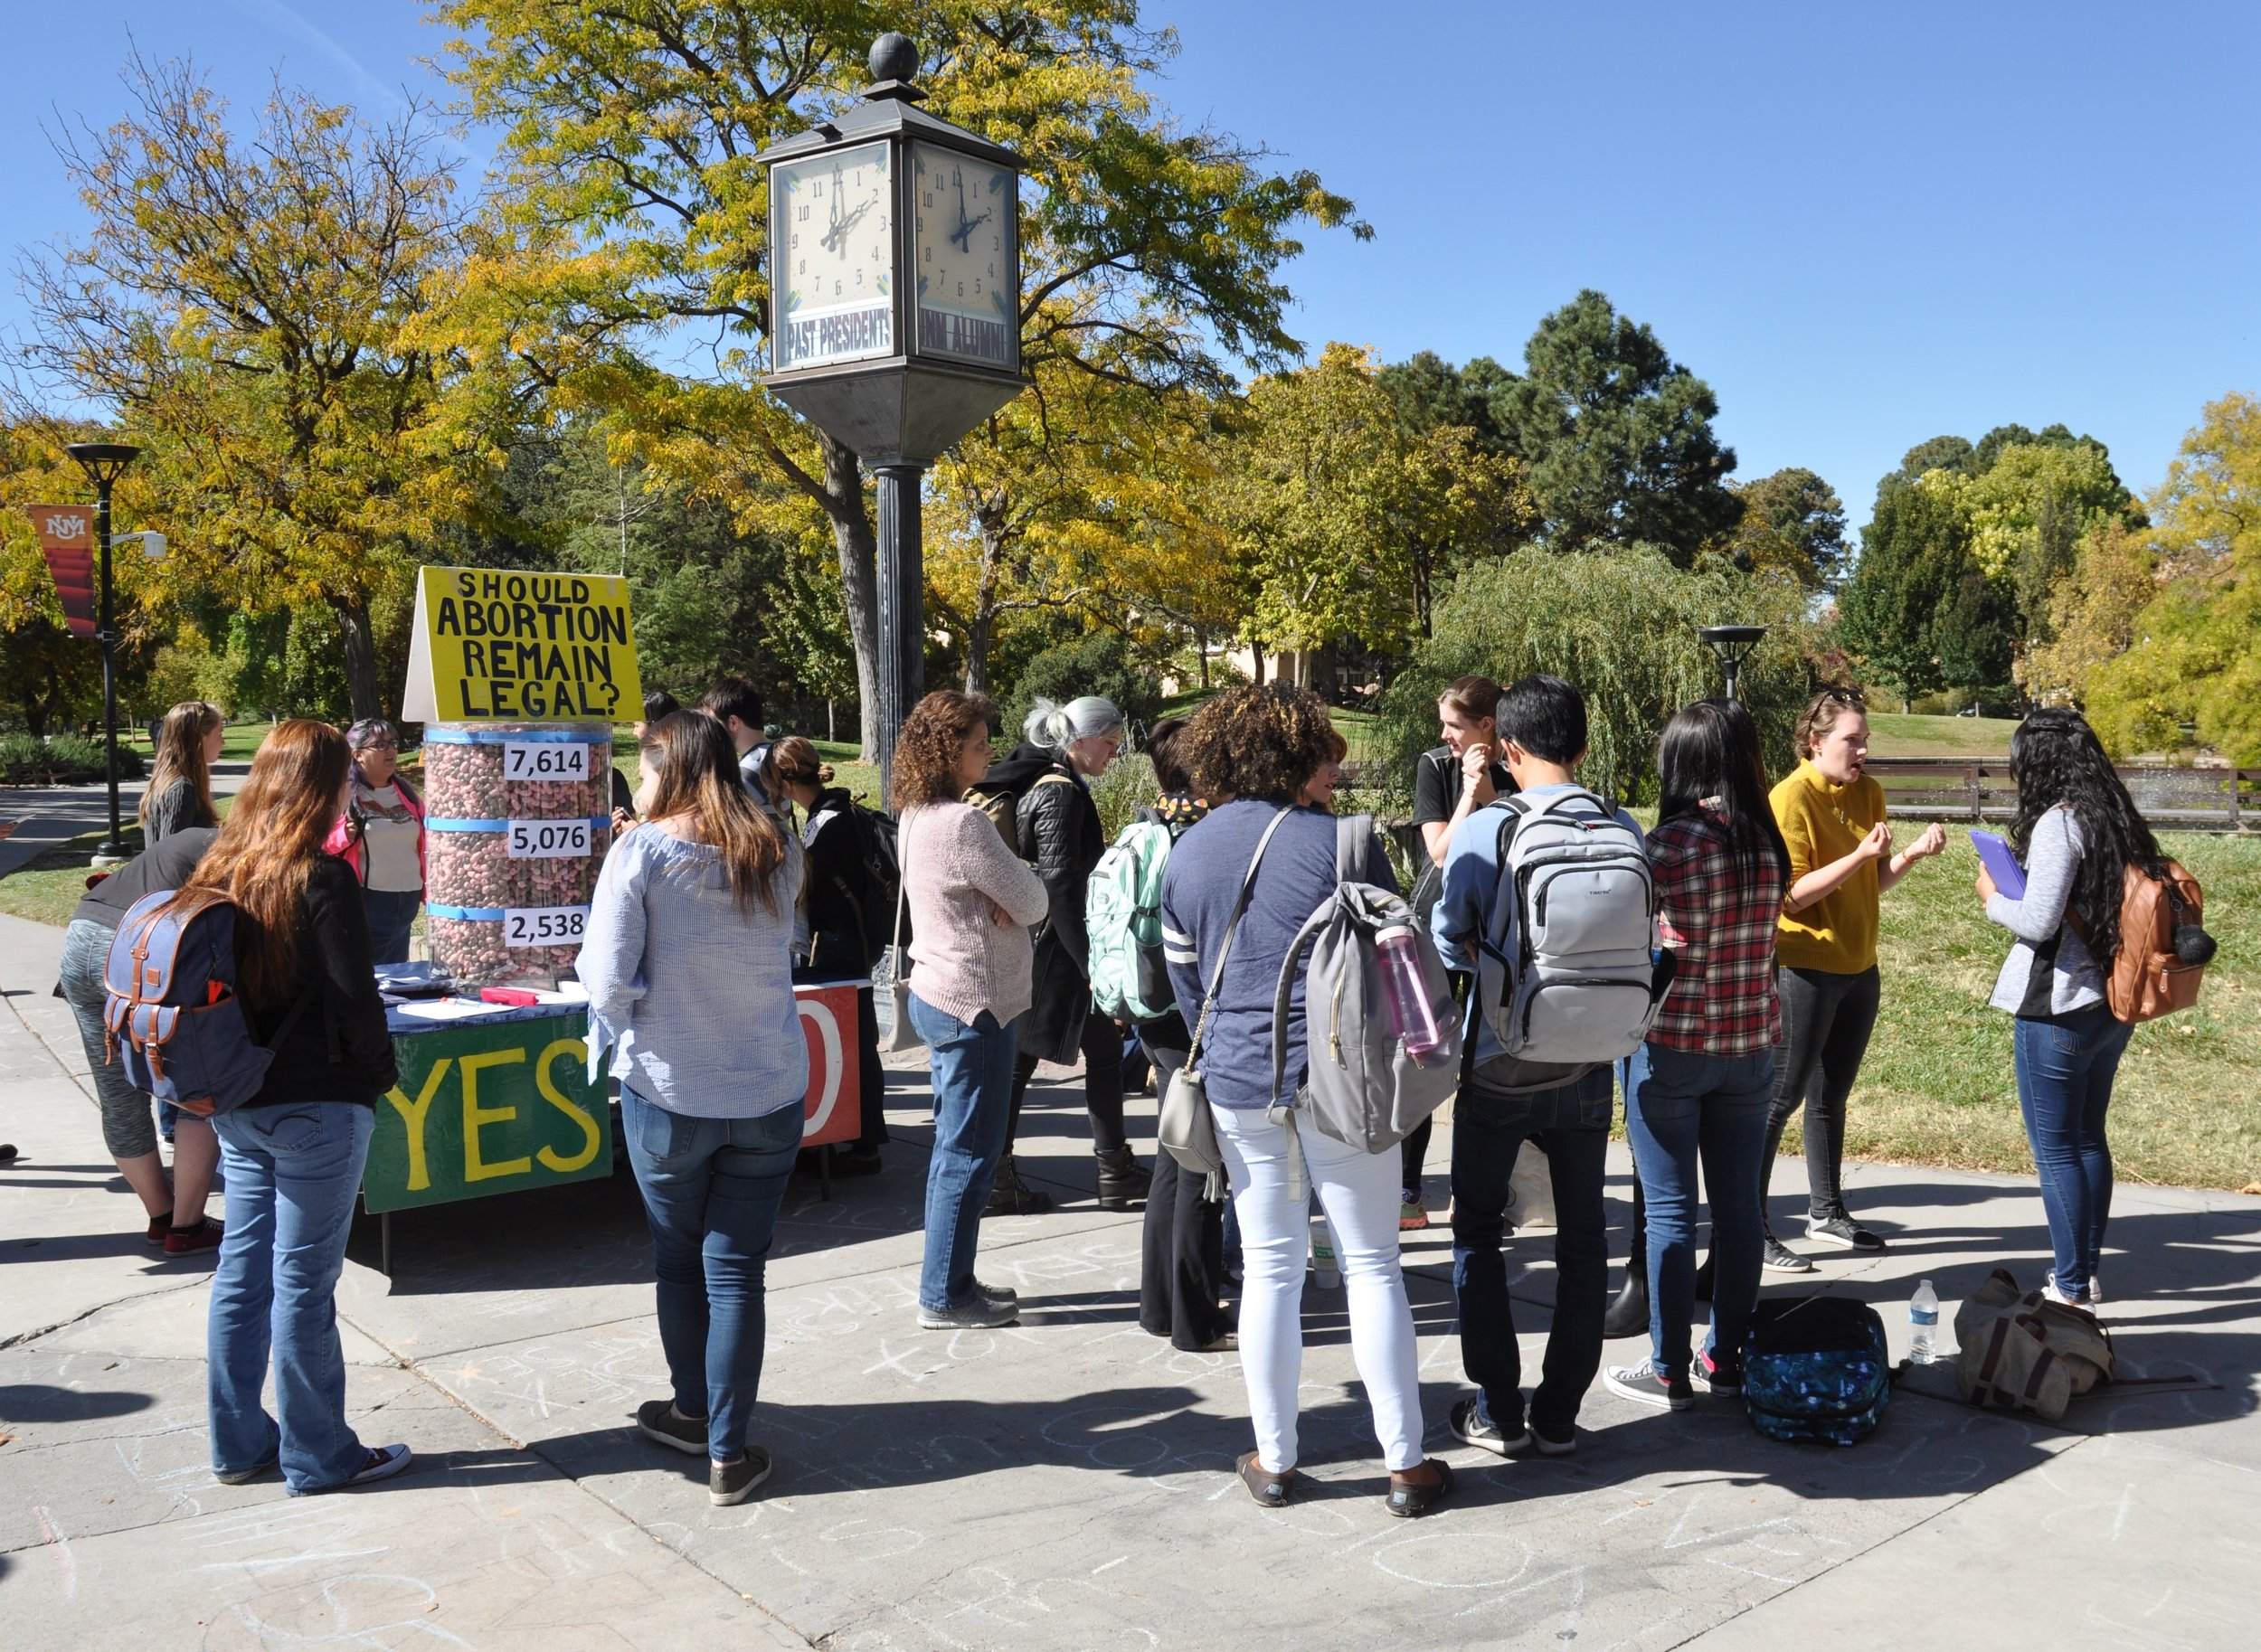 Julia (far left, with backpack) observes conversations at  a 2017 JFA outreach event at UNM  during her first semester on campus. The transparent barrel under the yellow sign contains fetal models representing the children killed by abortion in America during the days JFA was on campus.